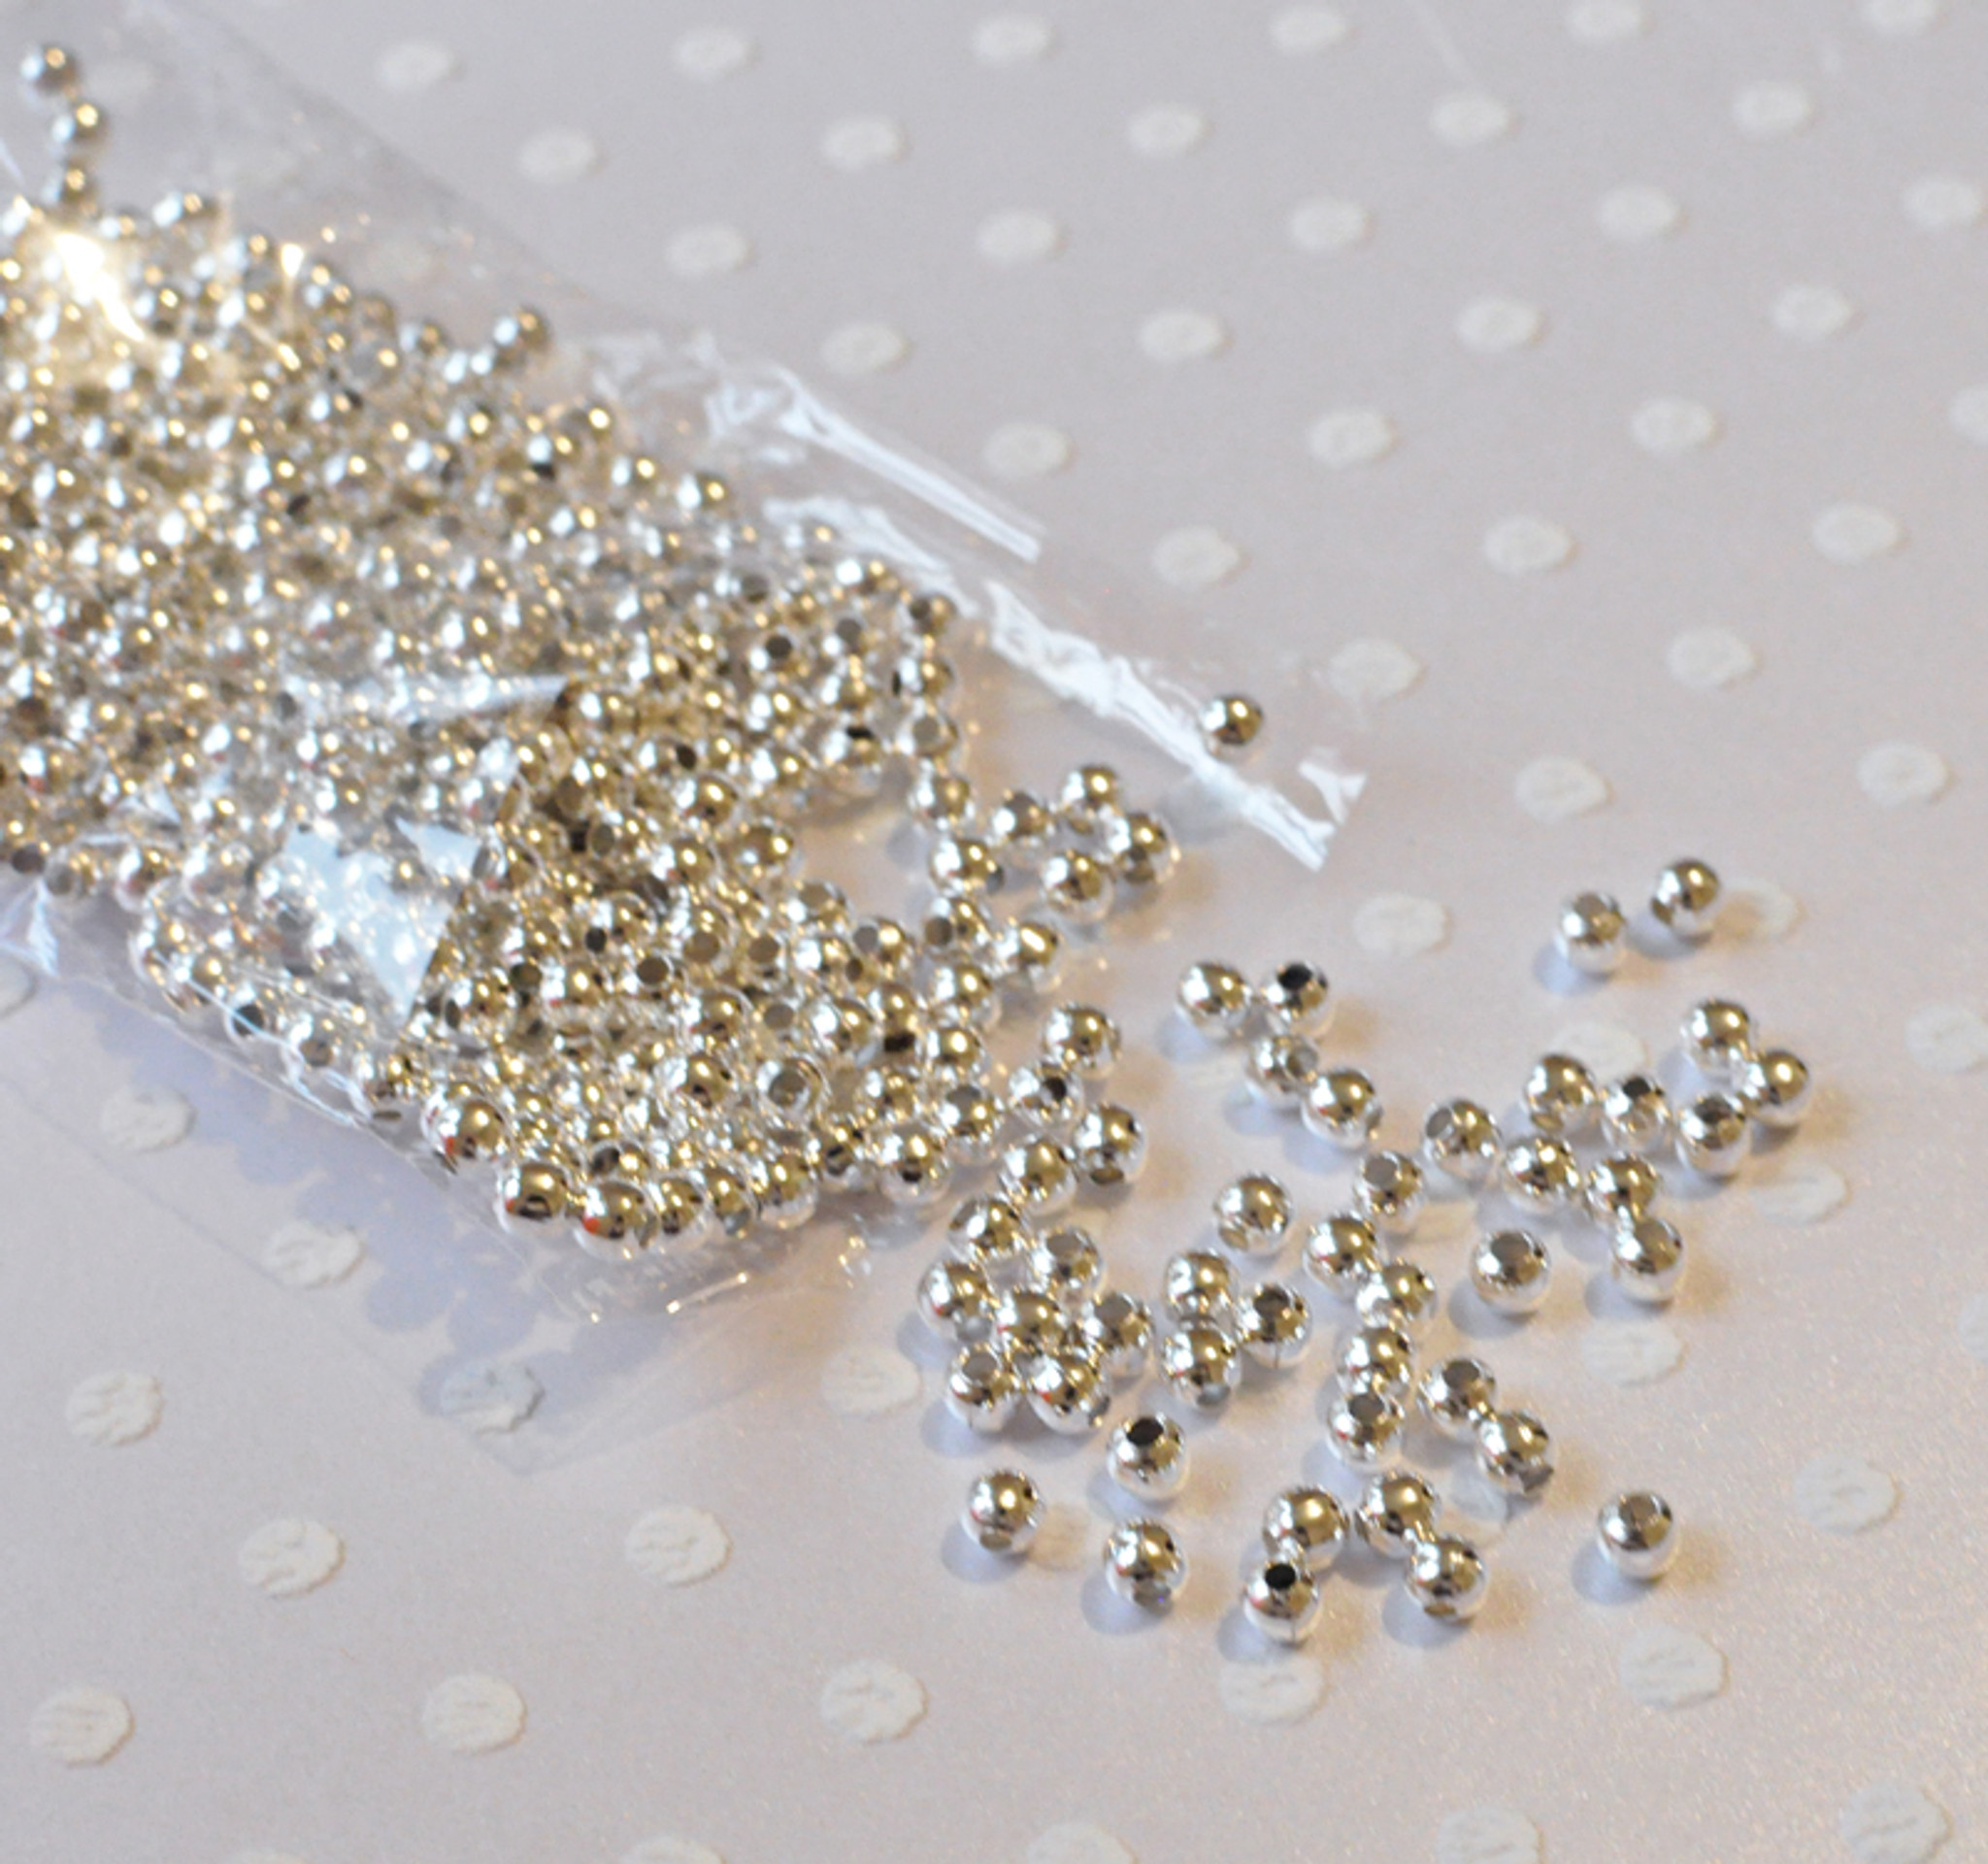 Wholesale jewelry findings 4mm silver plate spacer beads